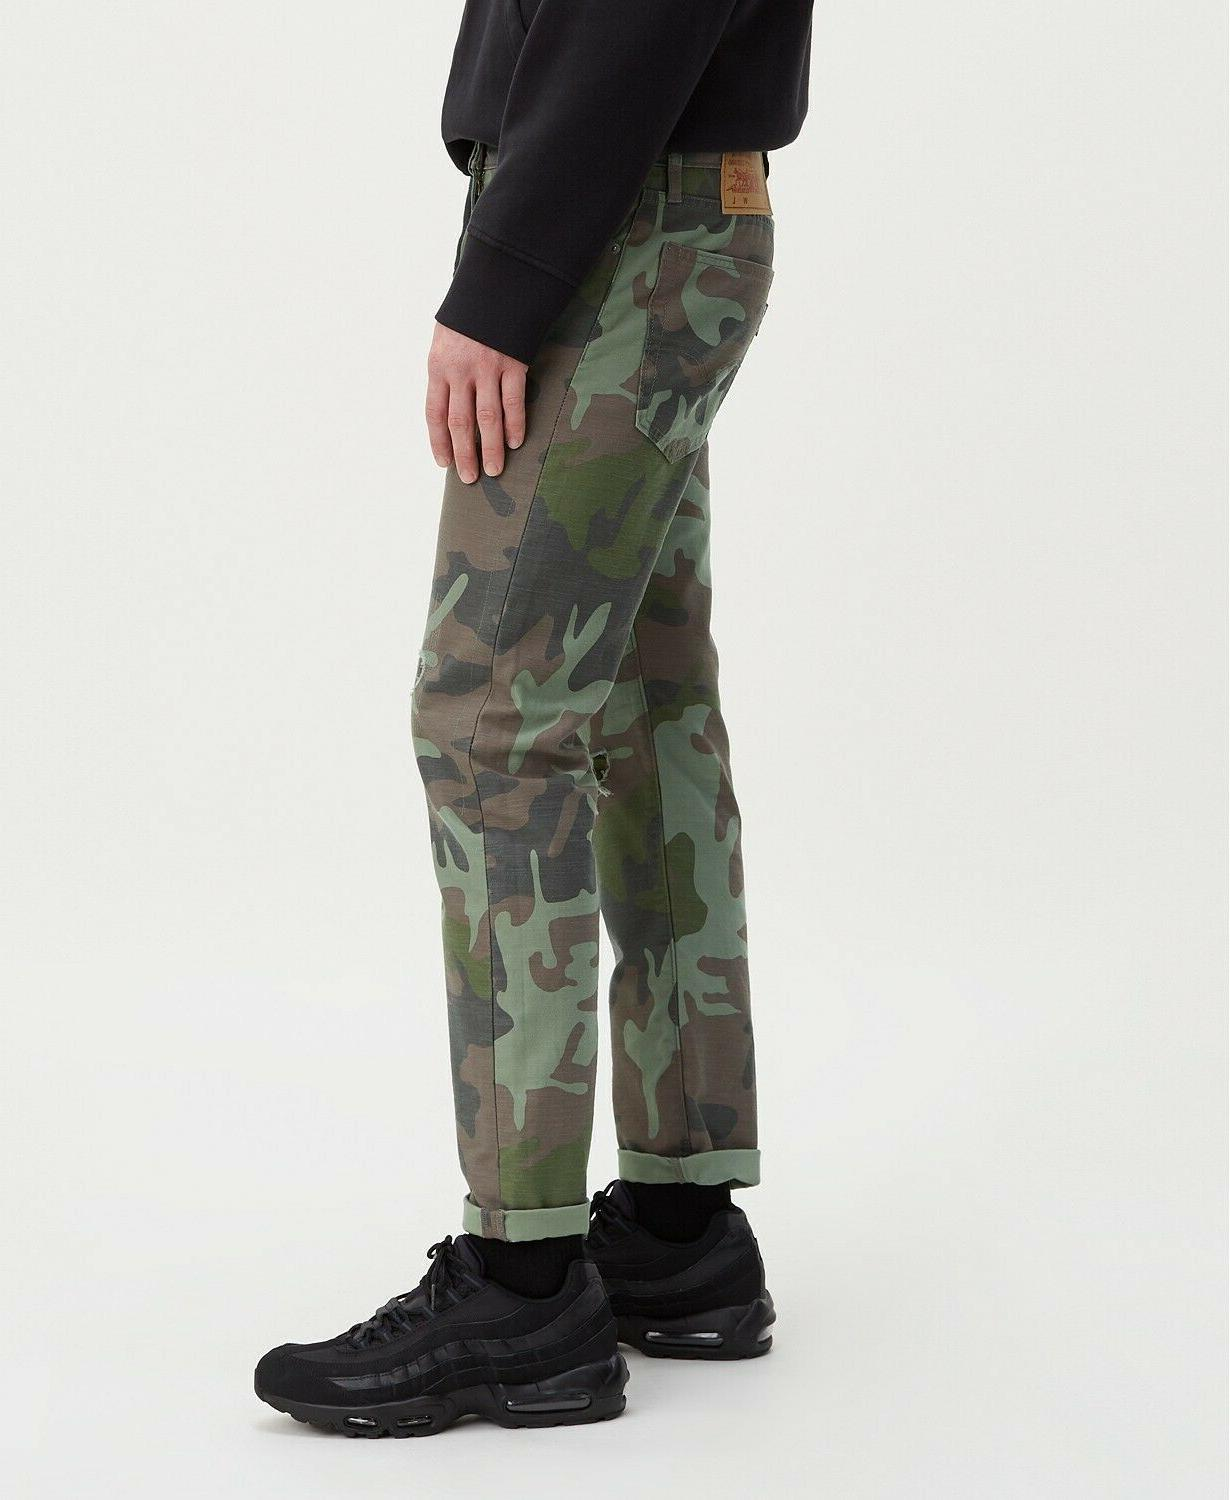 Levi's Premium Men's Tapered Camo and Black Hi Ball Roll Sne